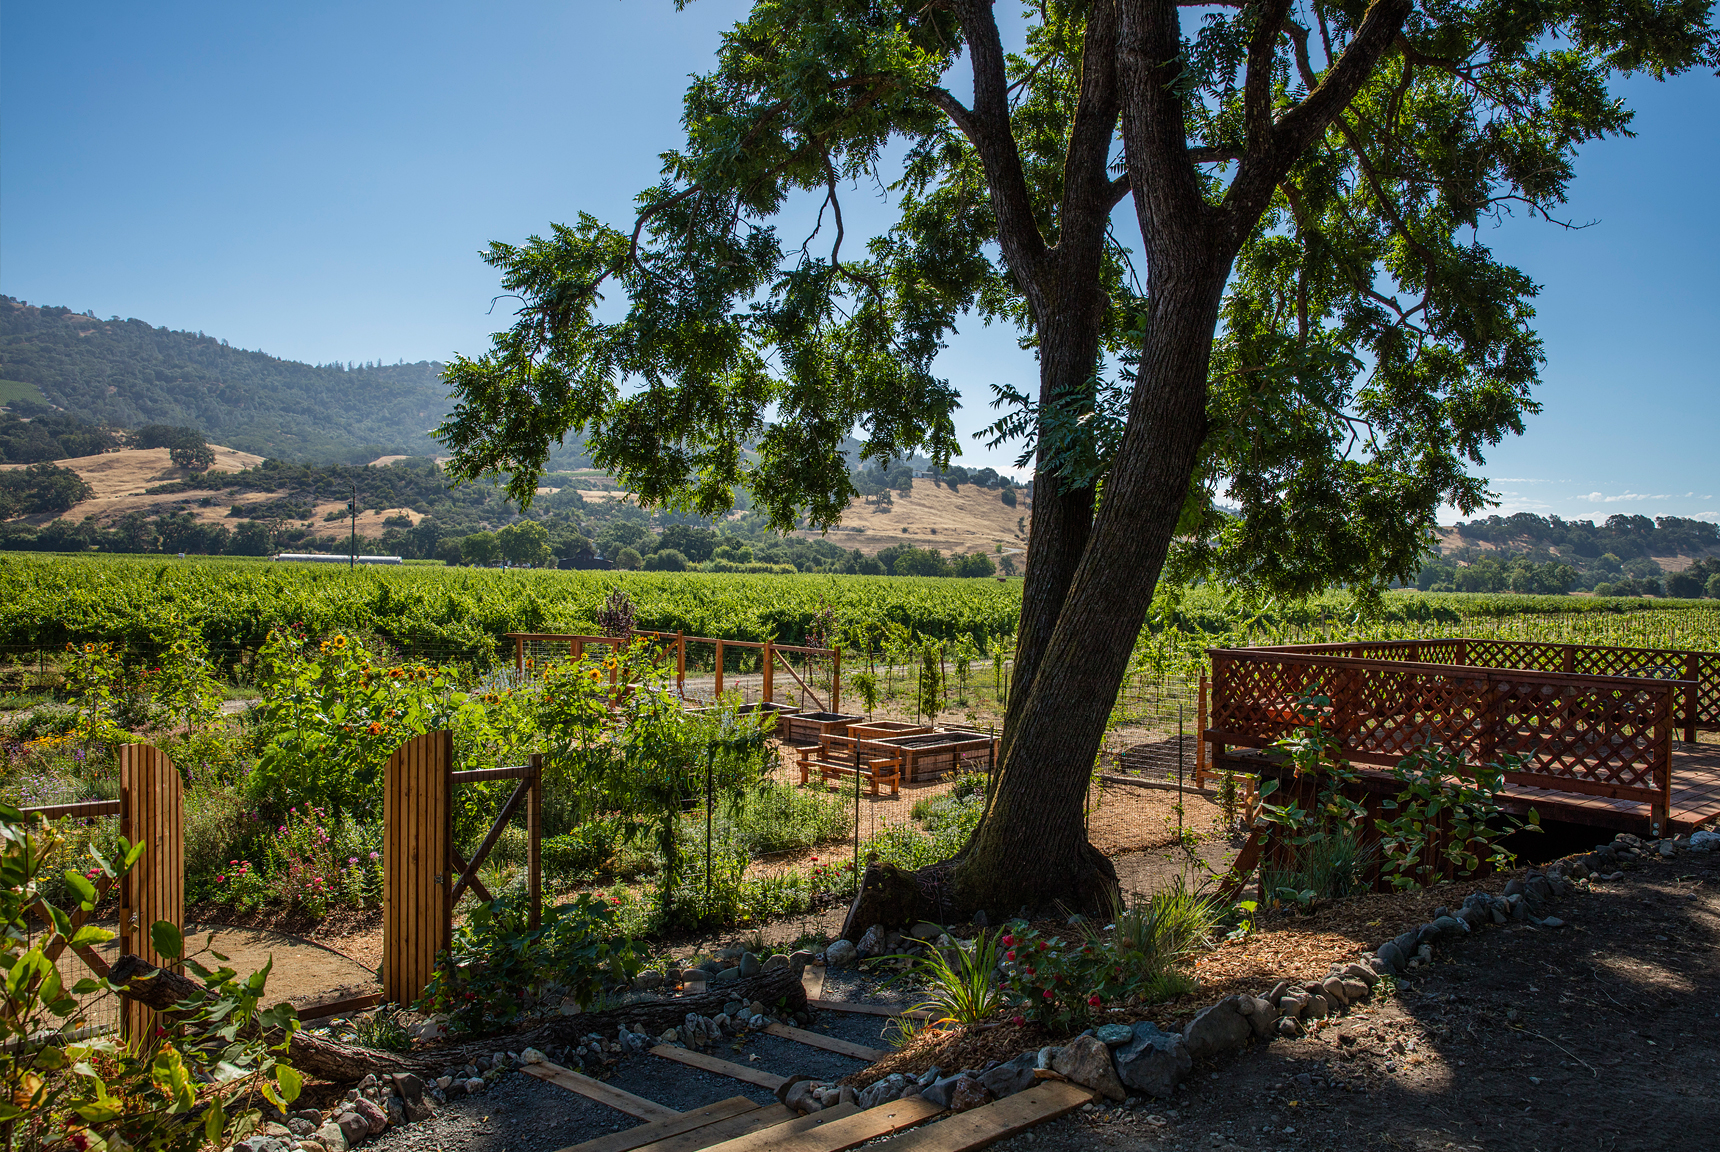 The winery's bee garden, next to the vineyards